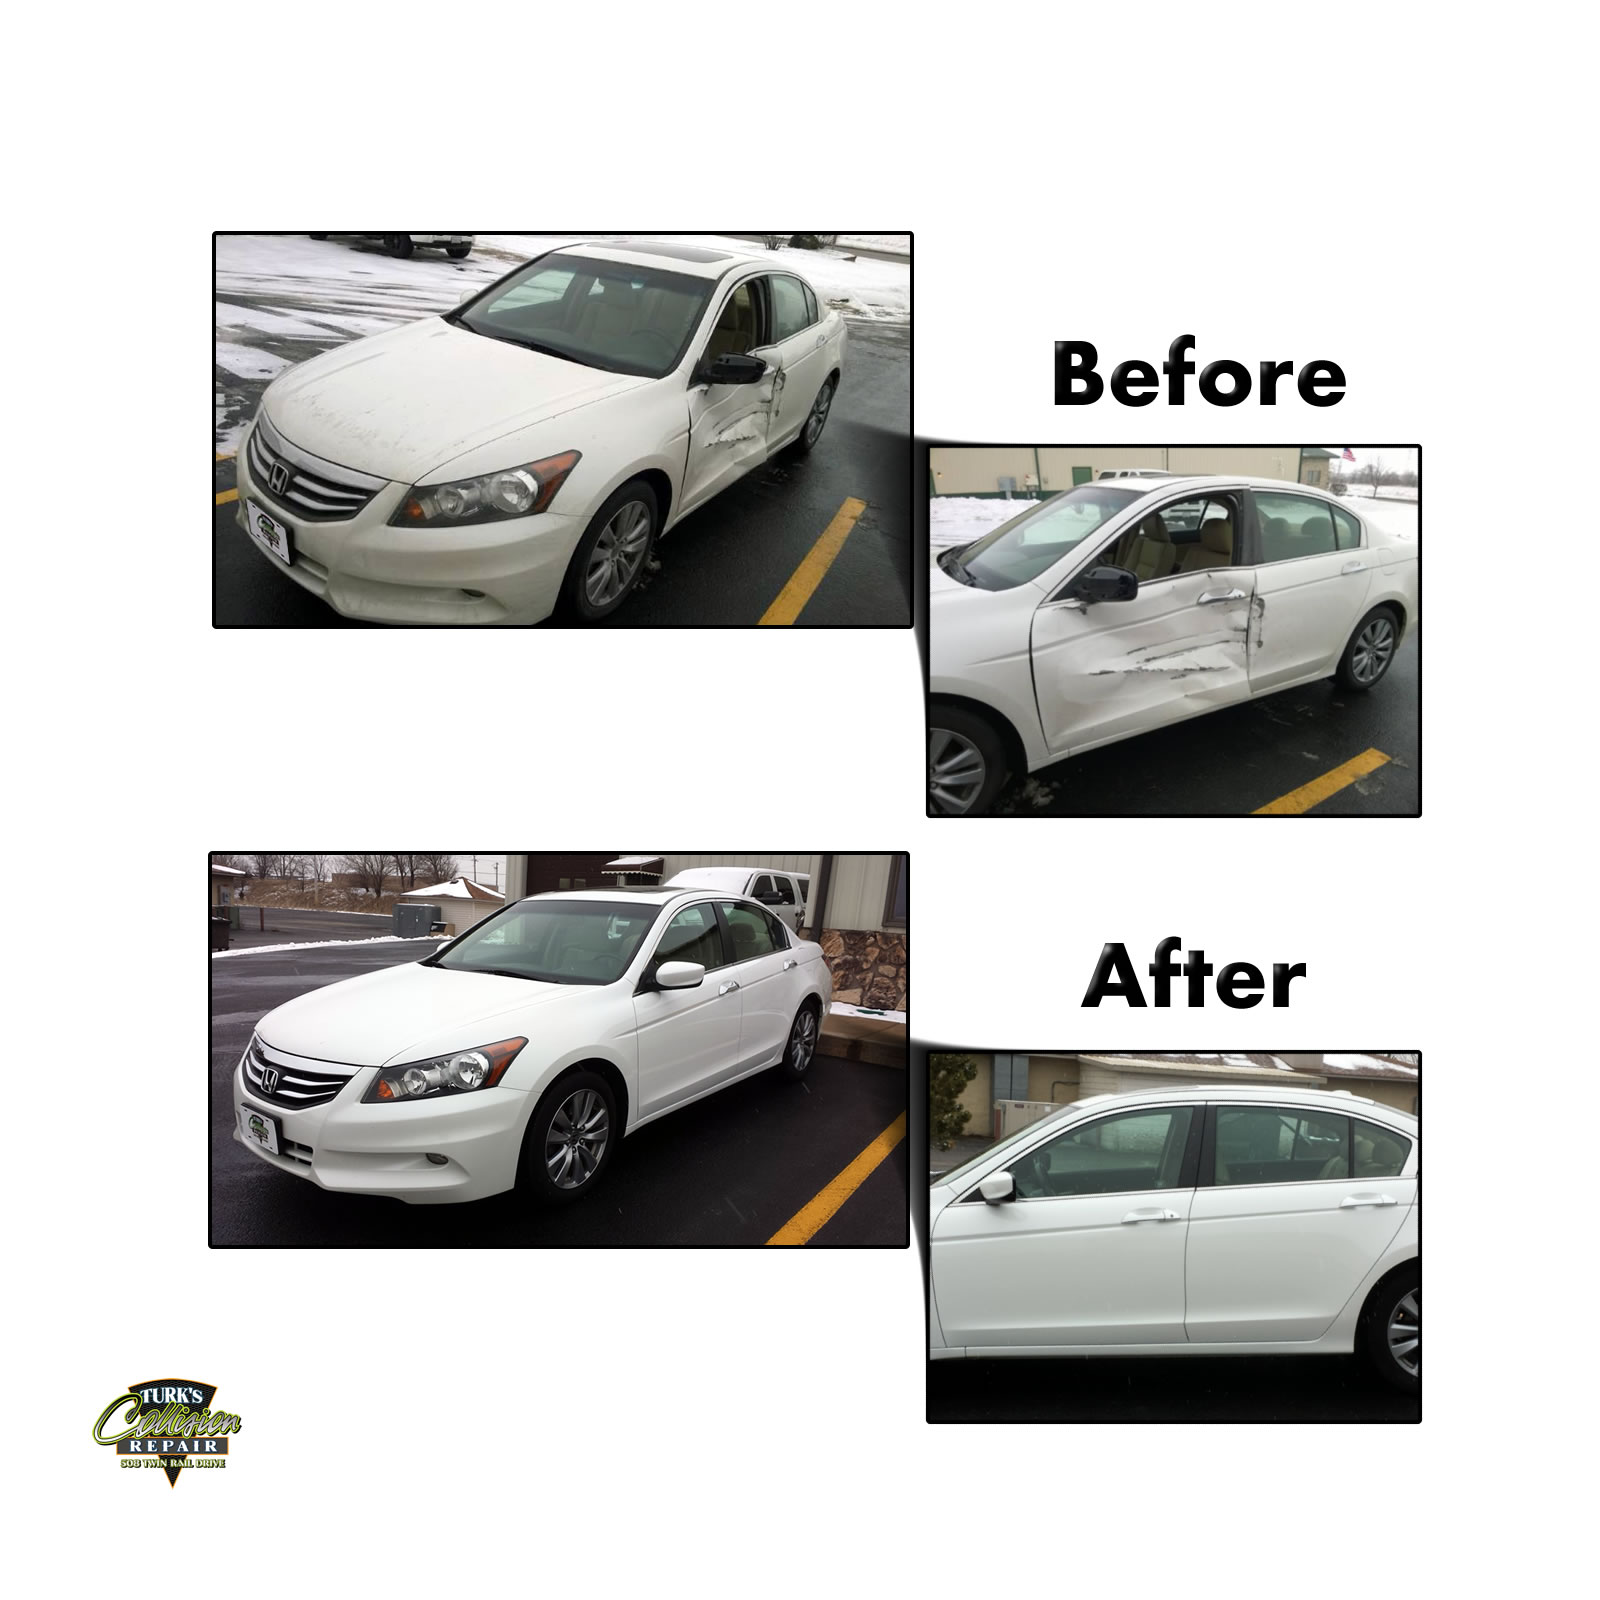 Honda Accord Collision Repair Minooka